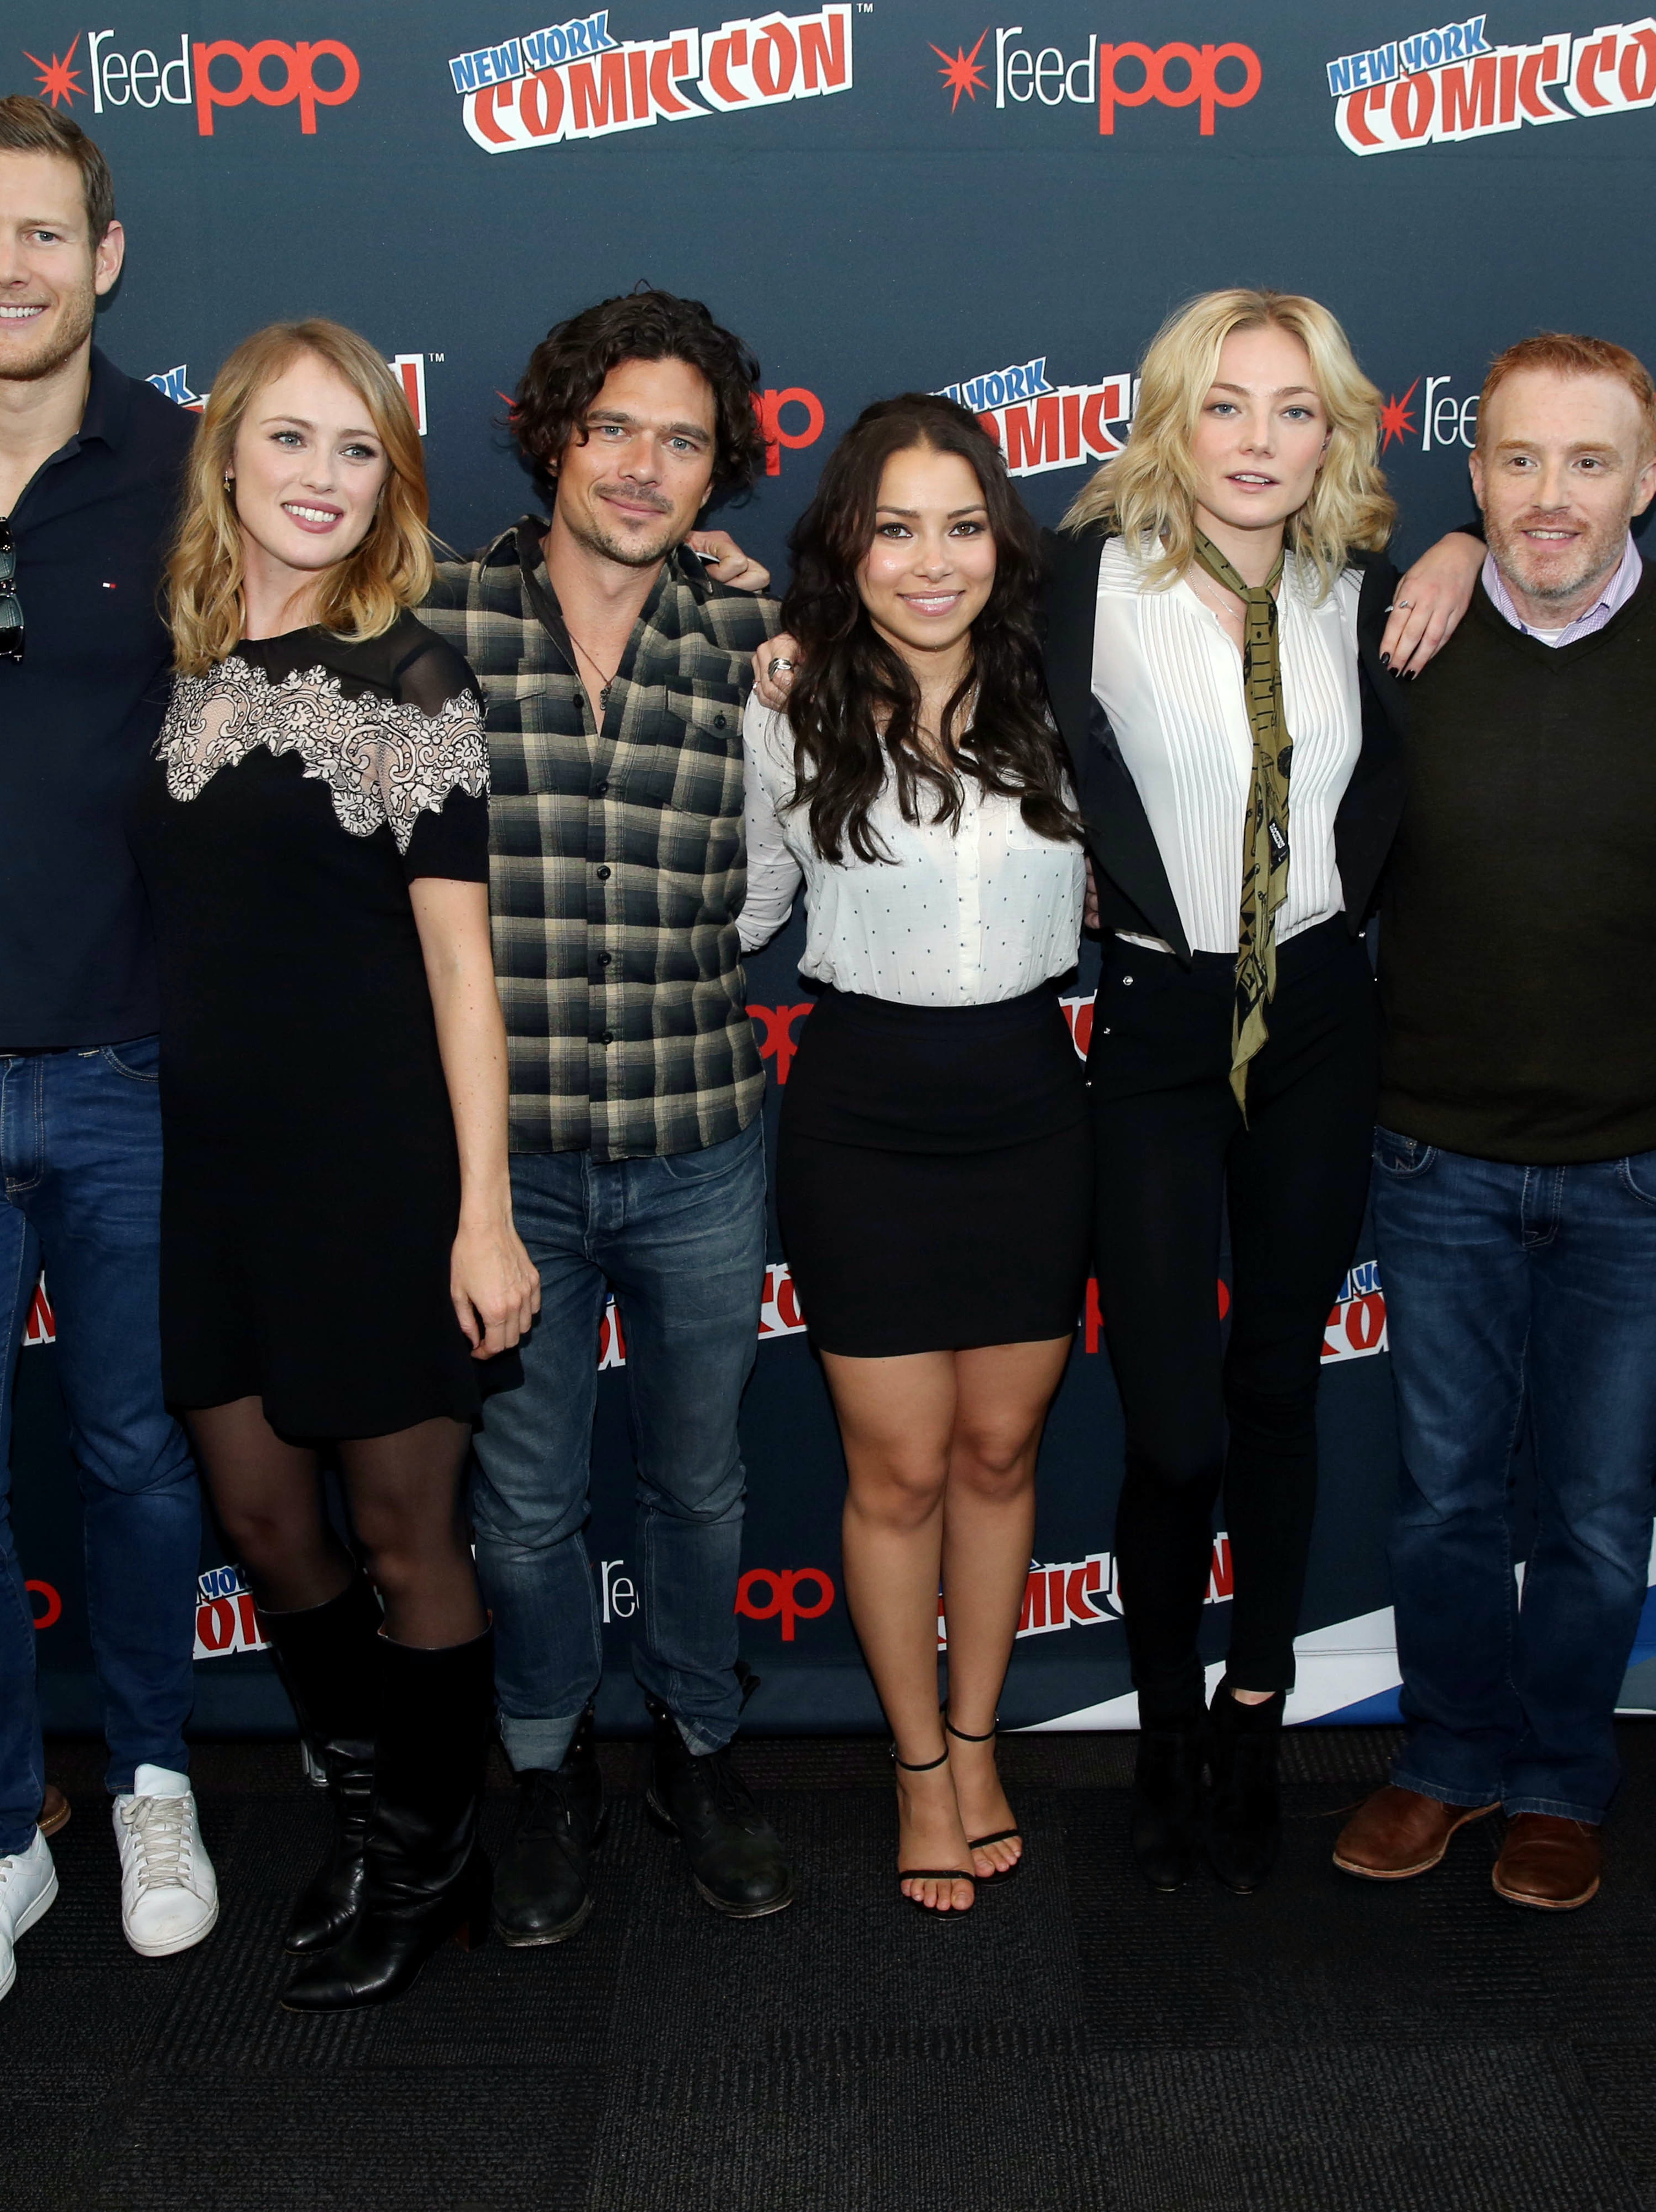 'Black Sails' creators and cast at New York Comic Con: Dan Shotz, Tom Hopper. Hannah New, Luke Arnold, Jessica Parker Kennedy, Clara Paget, Jonathan Steinberg, and Robert Levine